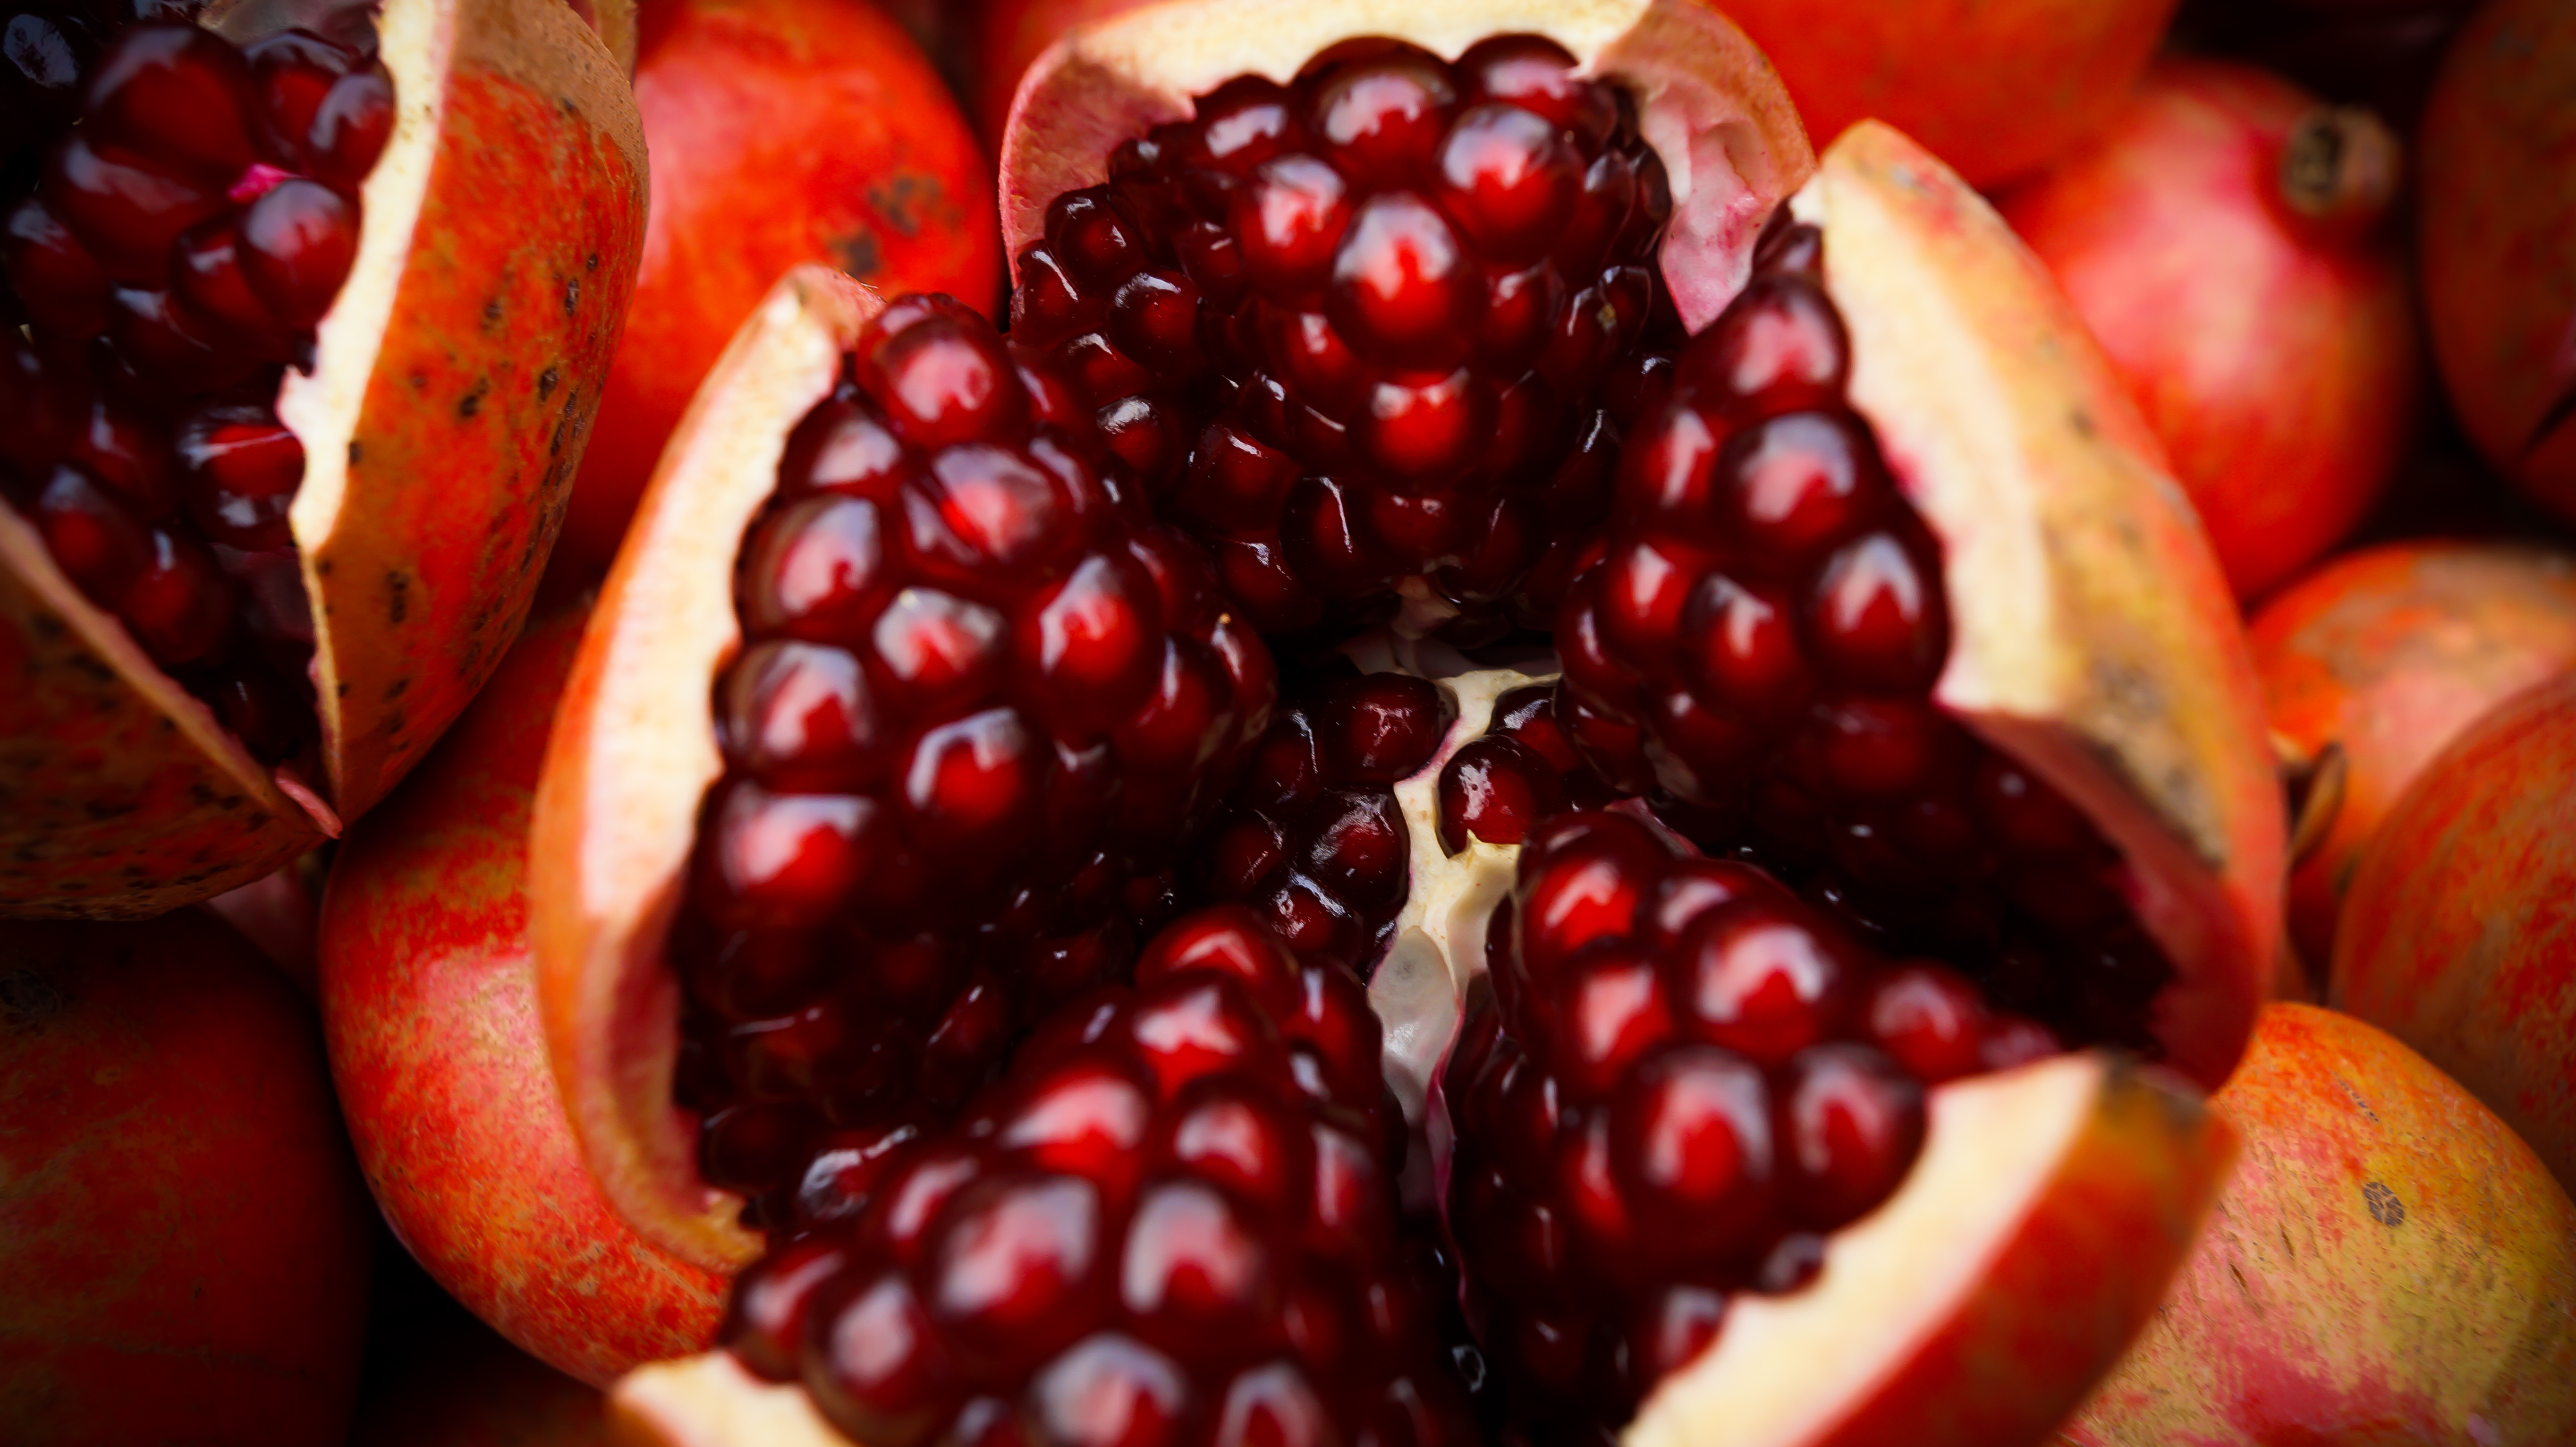 Fruit of the spirit comes from life in Him